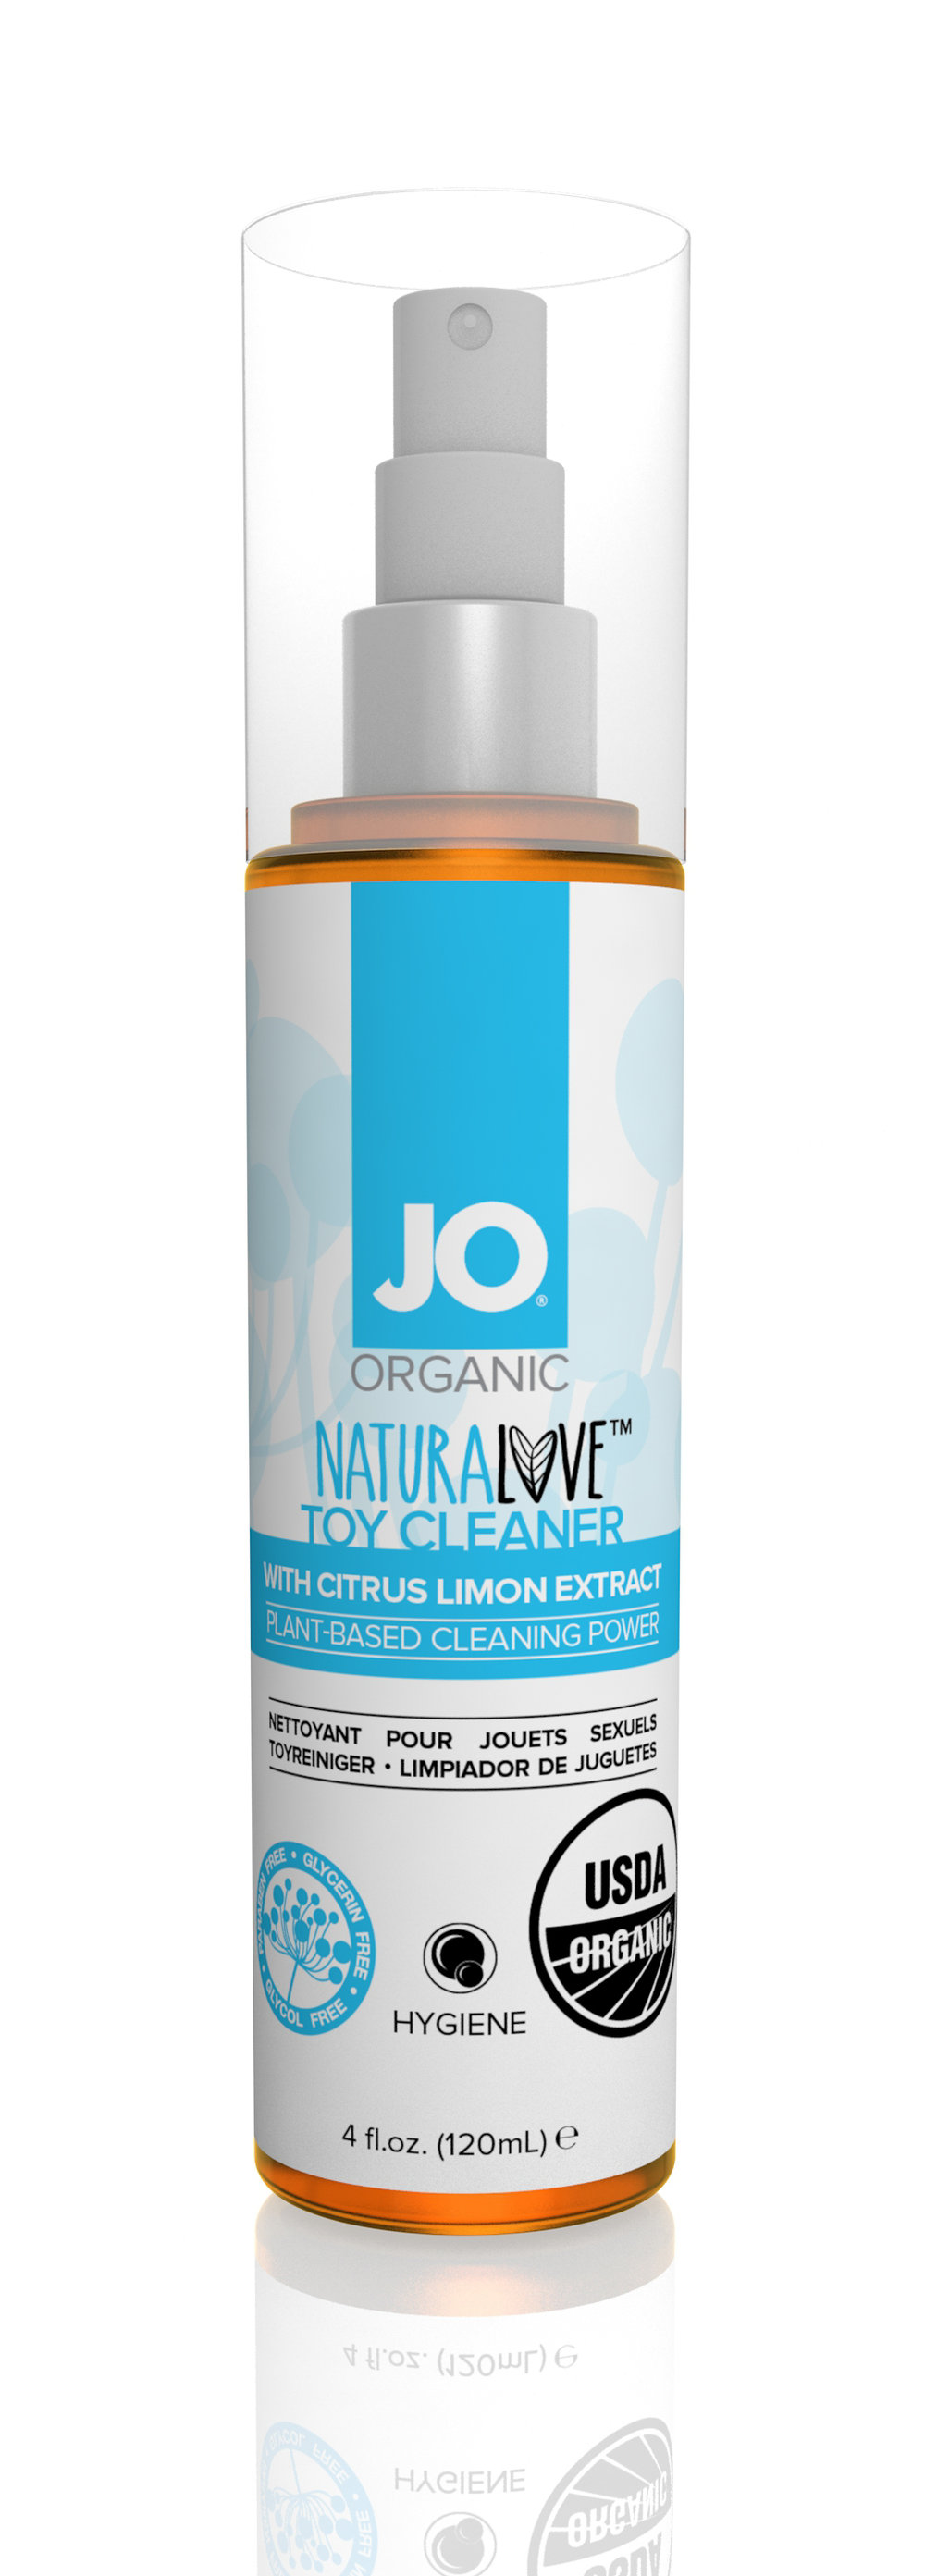 44003 - JO NATURALOVE USDA ORGANIC TOY CLEANER - 4fl.oz120mL.jpg